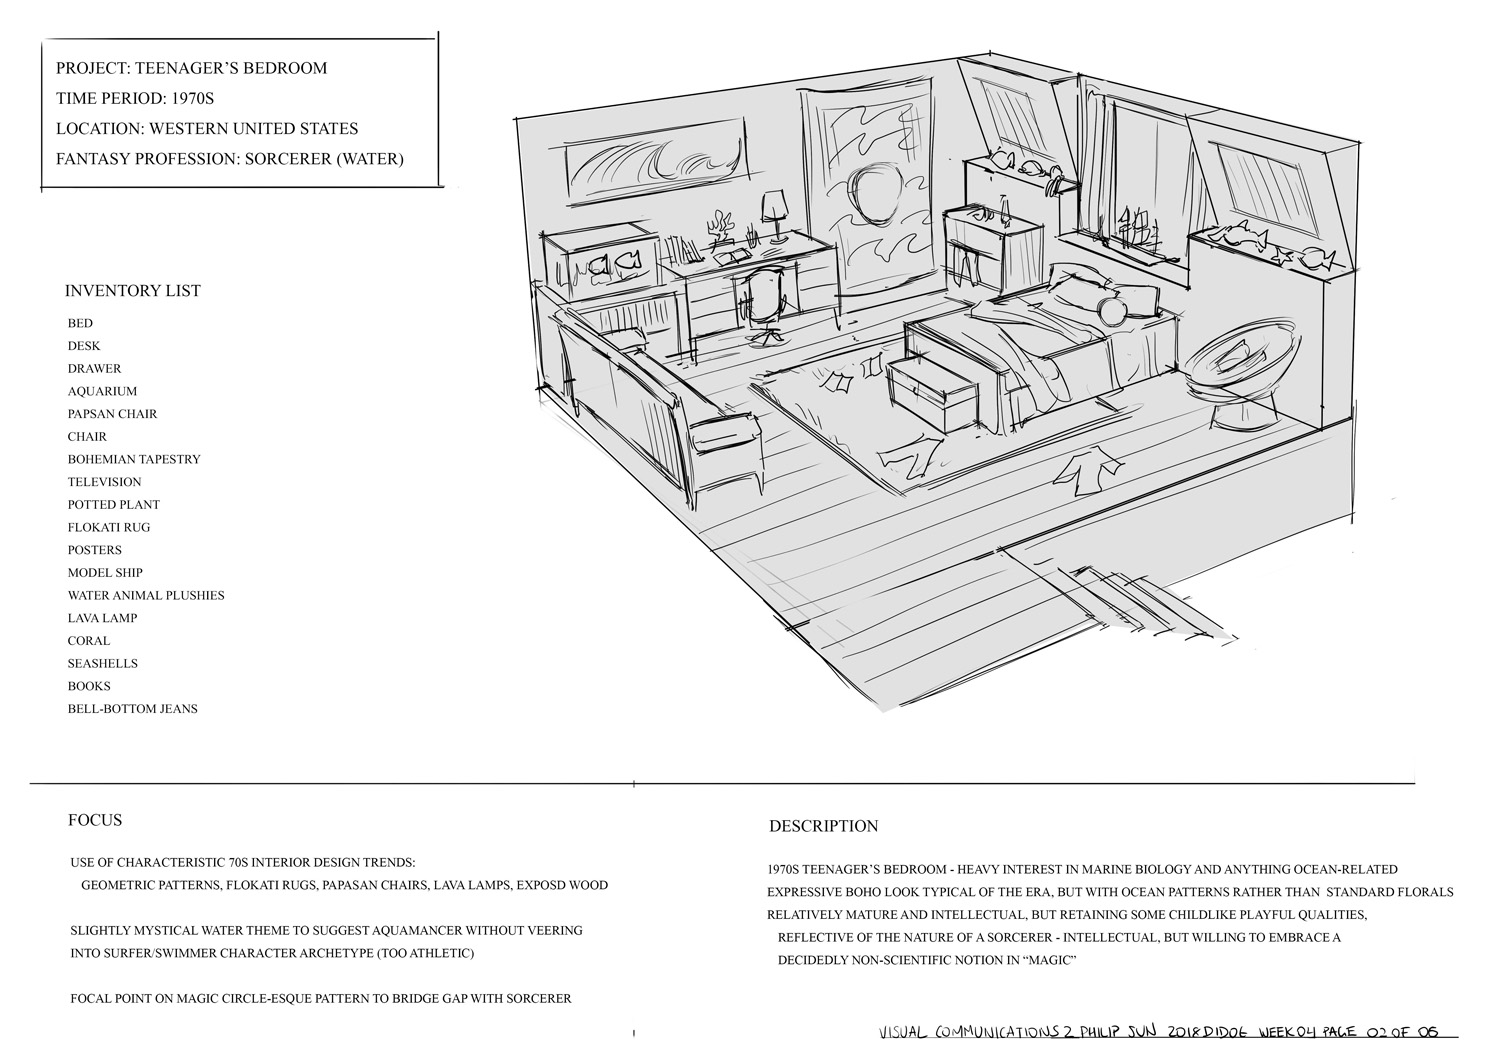 FZD of Design House Sketch Design Television on house studio design, house art design, house painting design, house model design, house design blueprint, house autocad, sketchup house design, house template, product page design, house plans with furniture layouts, house green design, house layout design, house graphic design, green building design, house drawing, house study design, house construction, house perspective design, house light design, house architecture design,